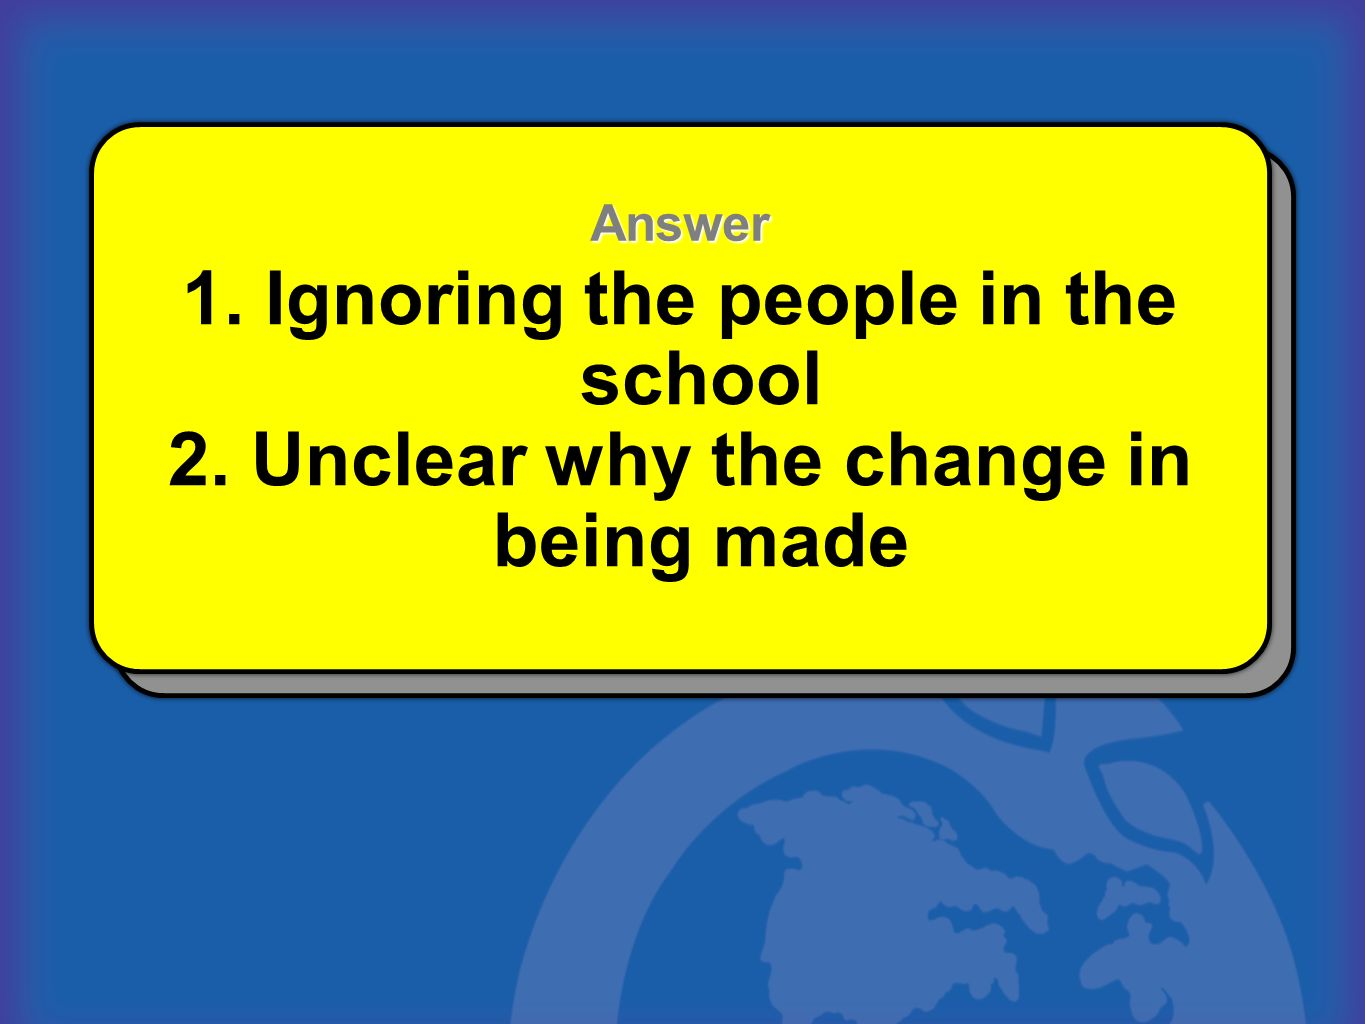 1. Ignoring the people in the school